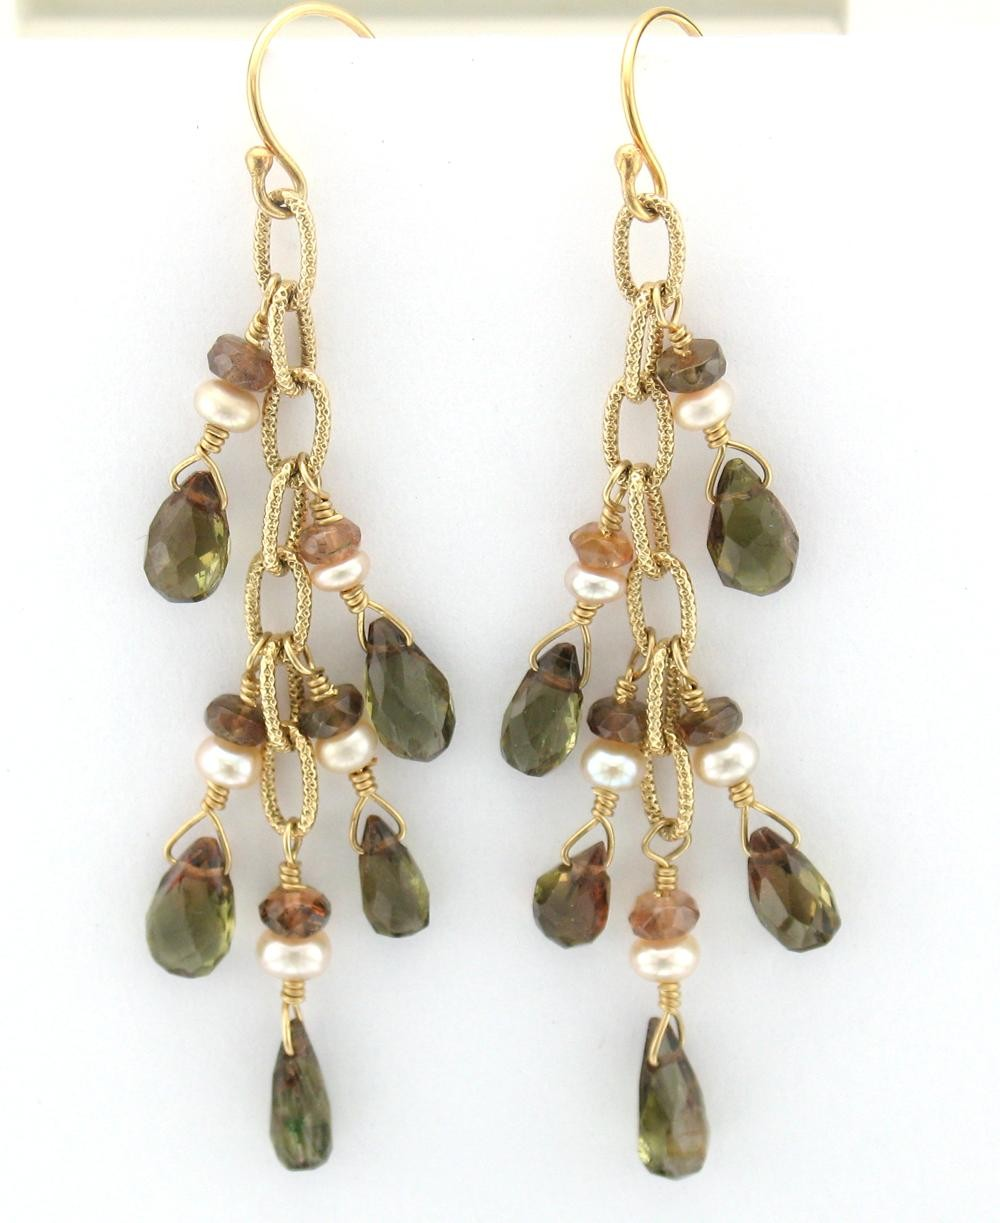 Confetti Earring -  Andalusite and Pearl, 14K Gold-Filled   $115